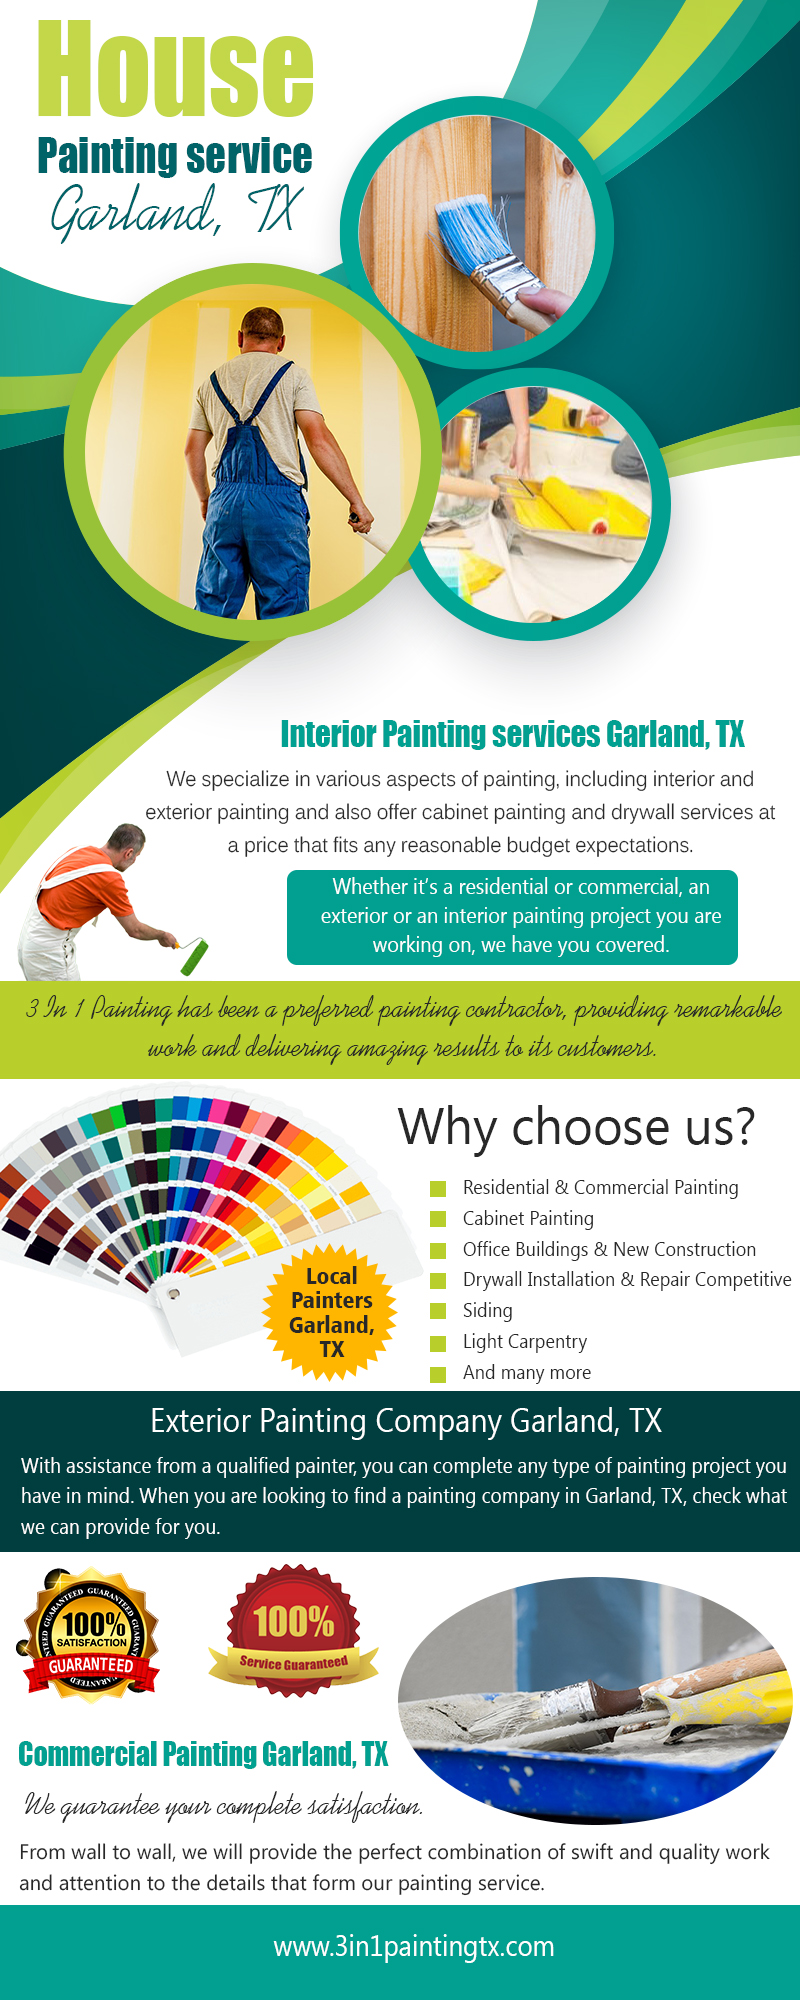 House Painting service Garland, TX|http://3in1paintingtx.com/